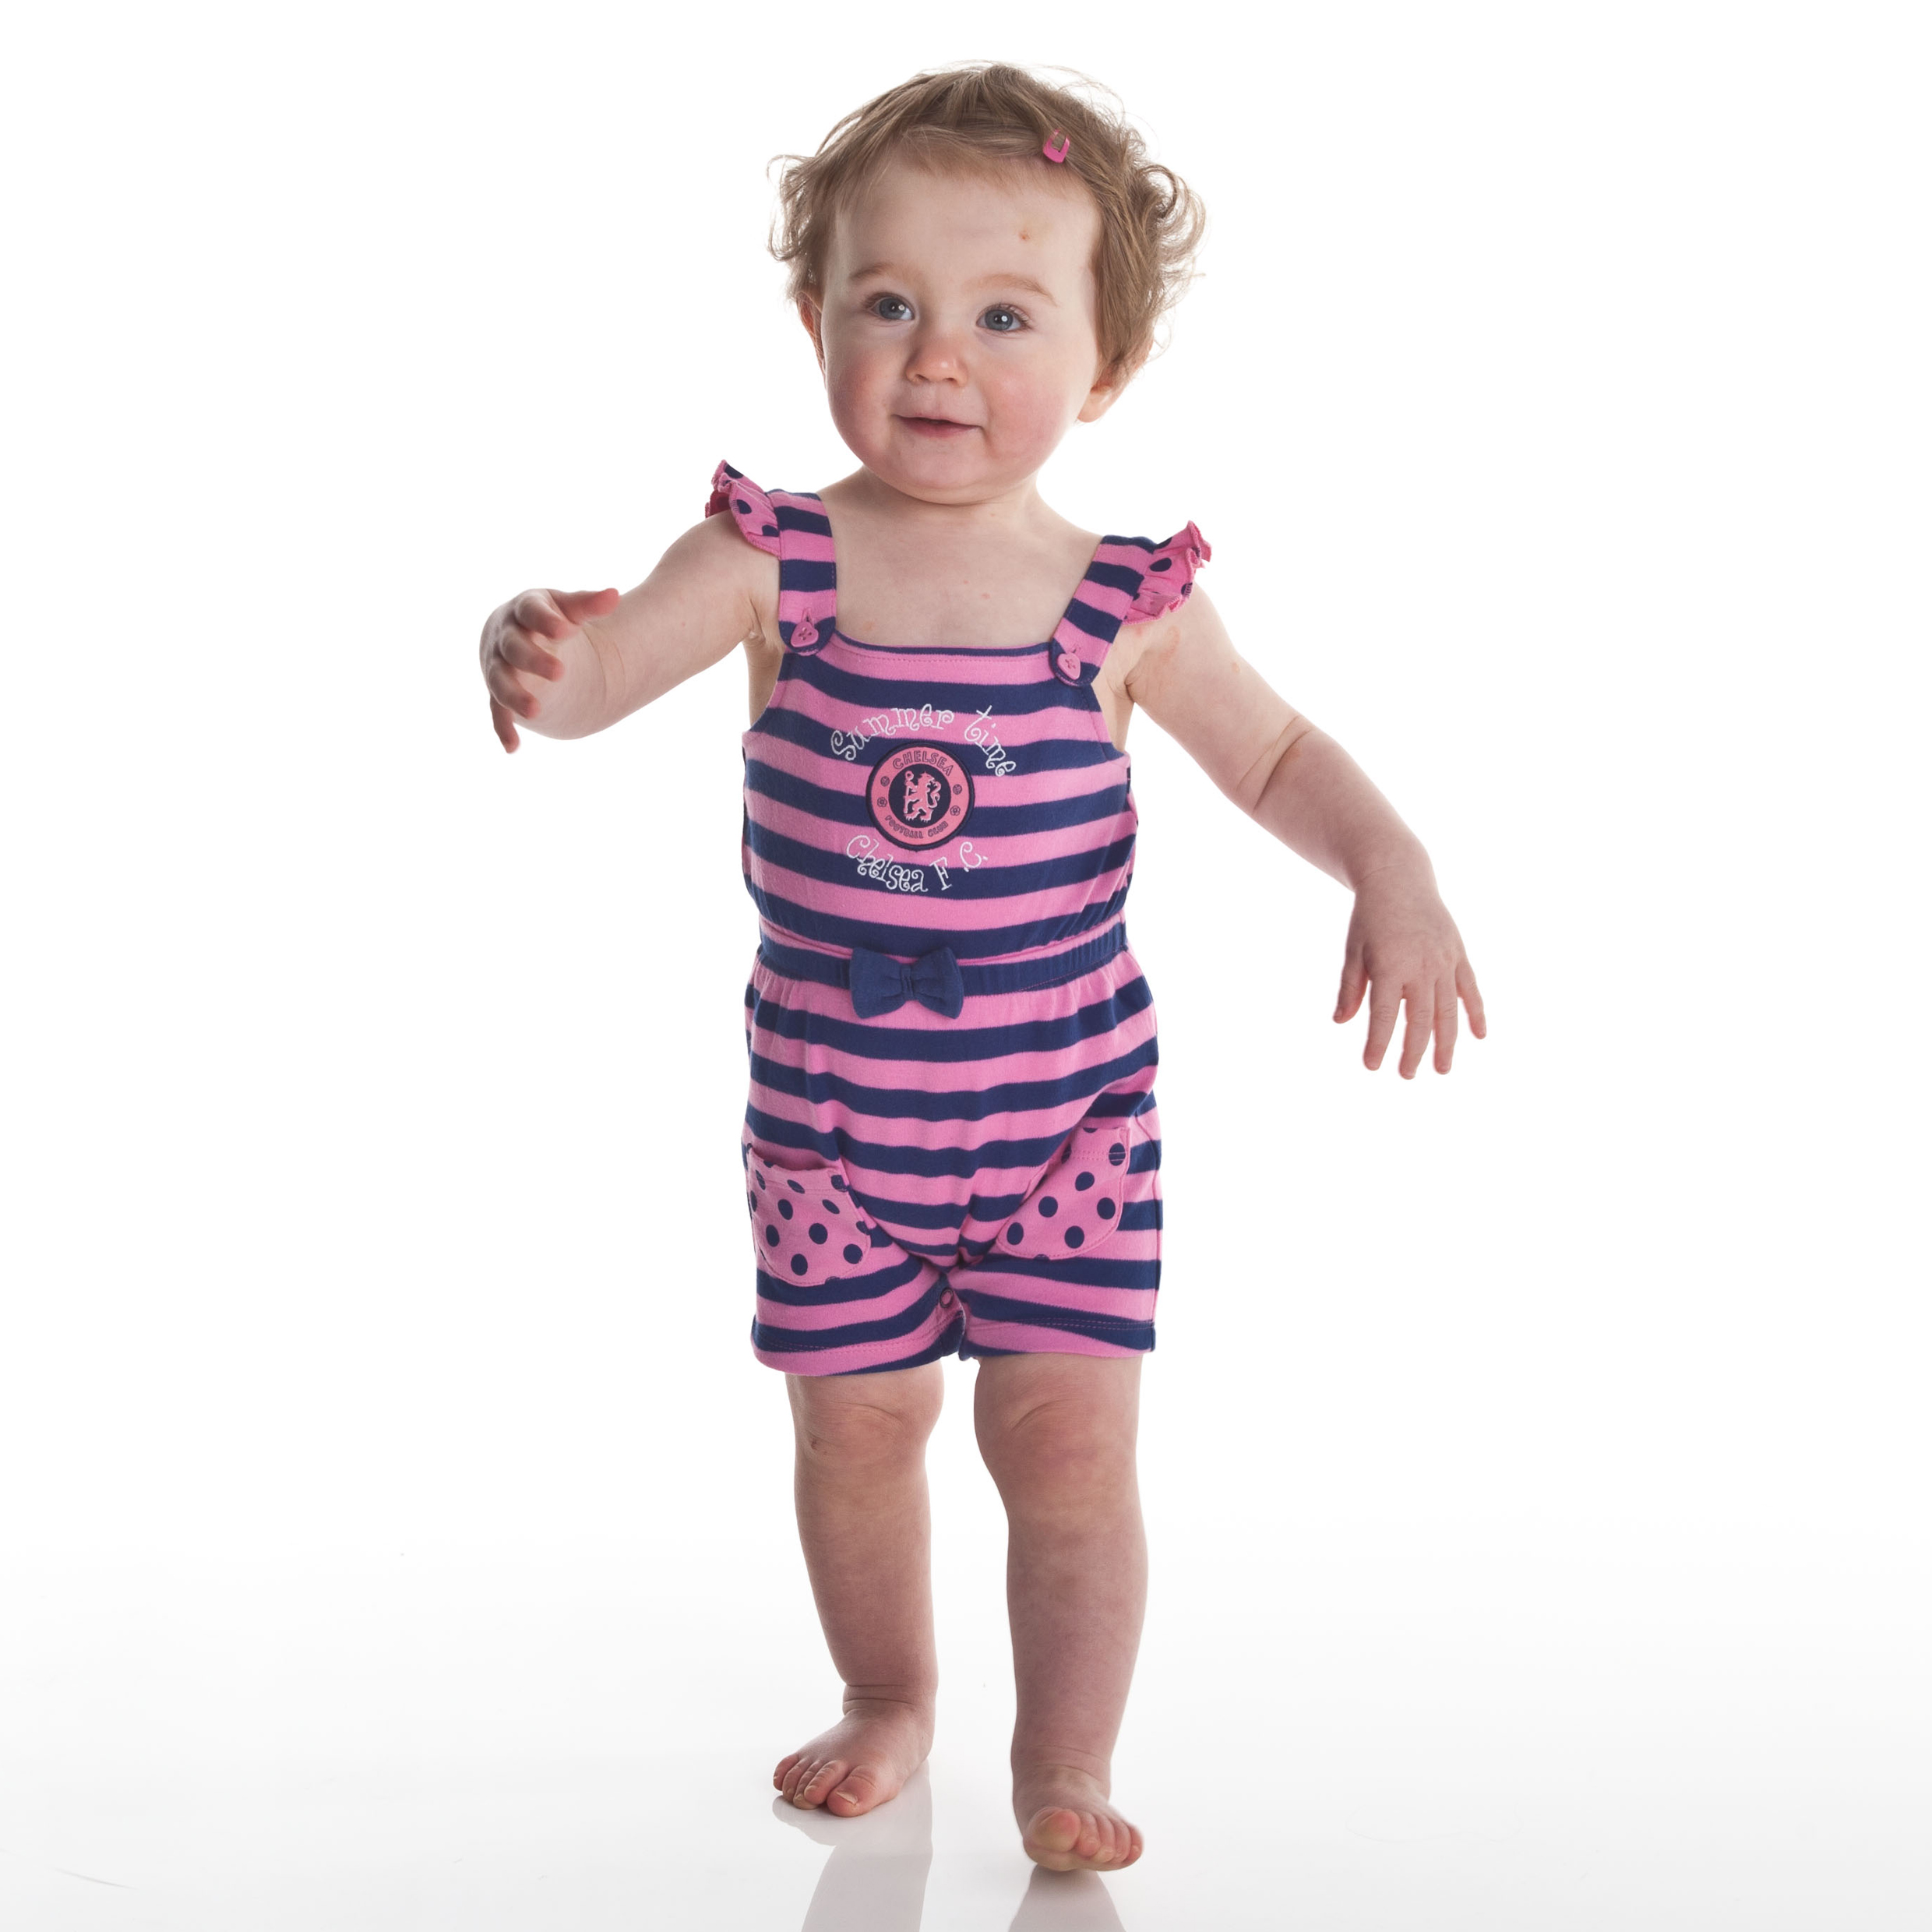 Chelsea Striped Playsuit - Sugar Pink/Navy - Baby Girls